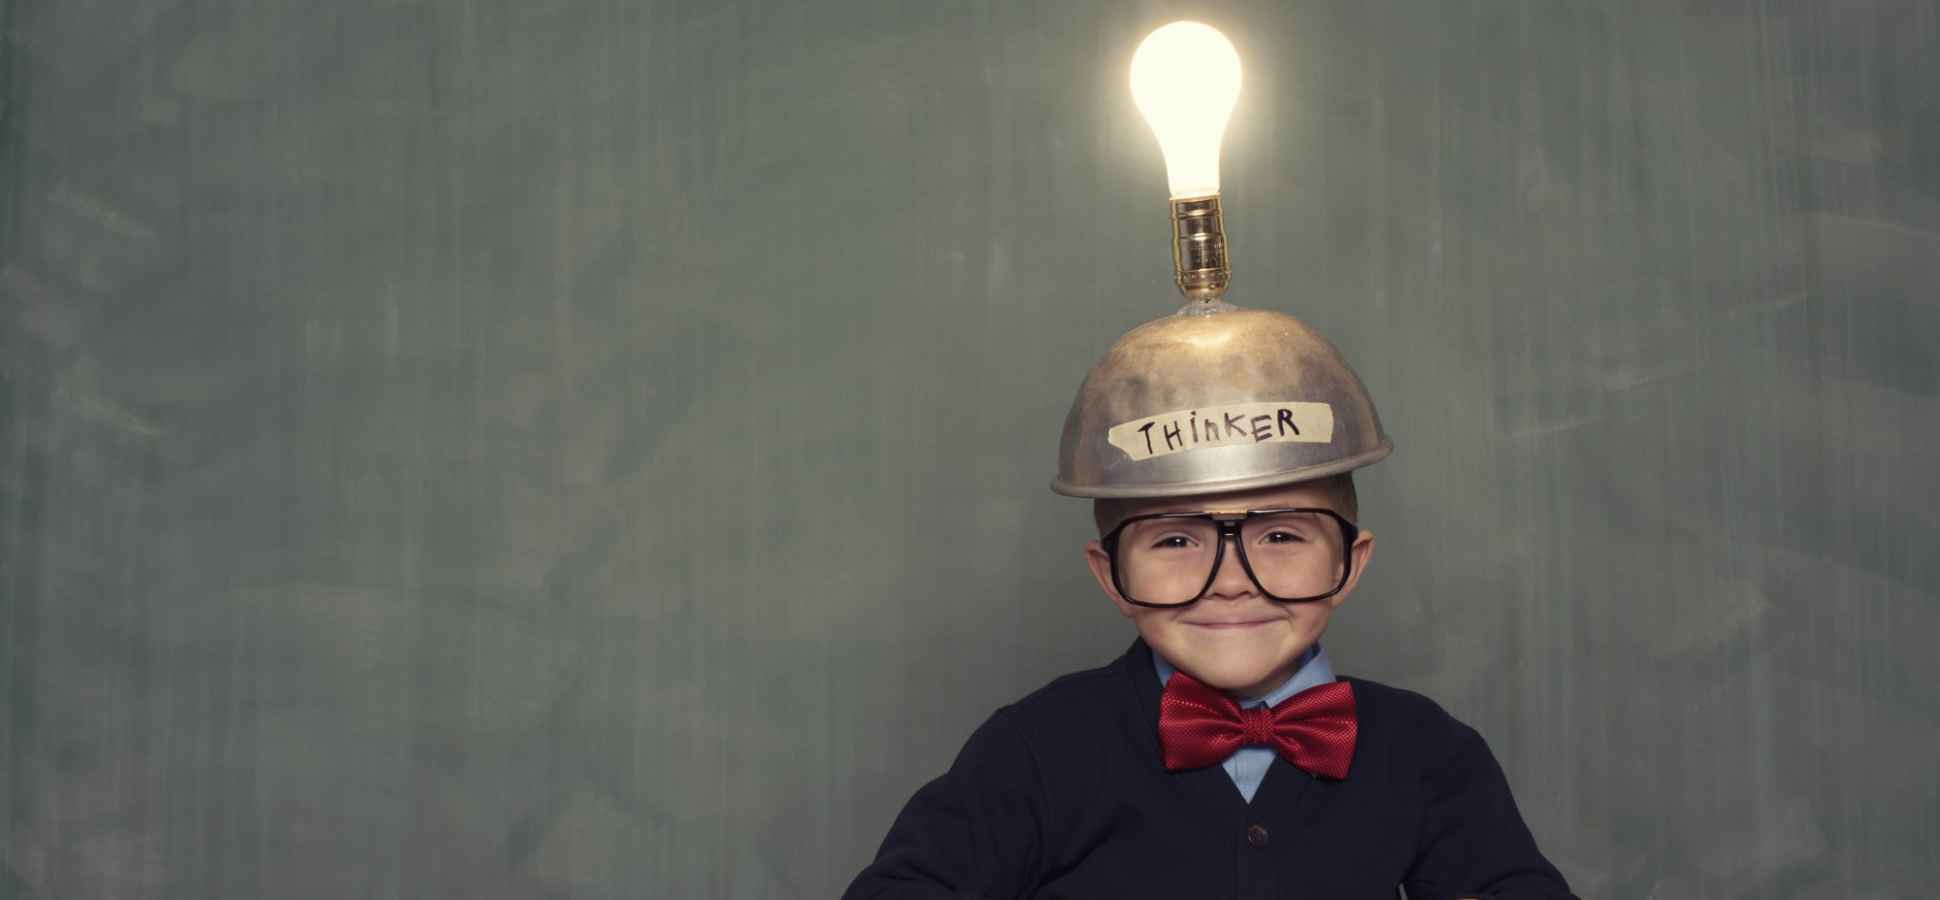 Want to Raise Your IQ? Neuroscience Says to Take Up This Easy Habit